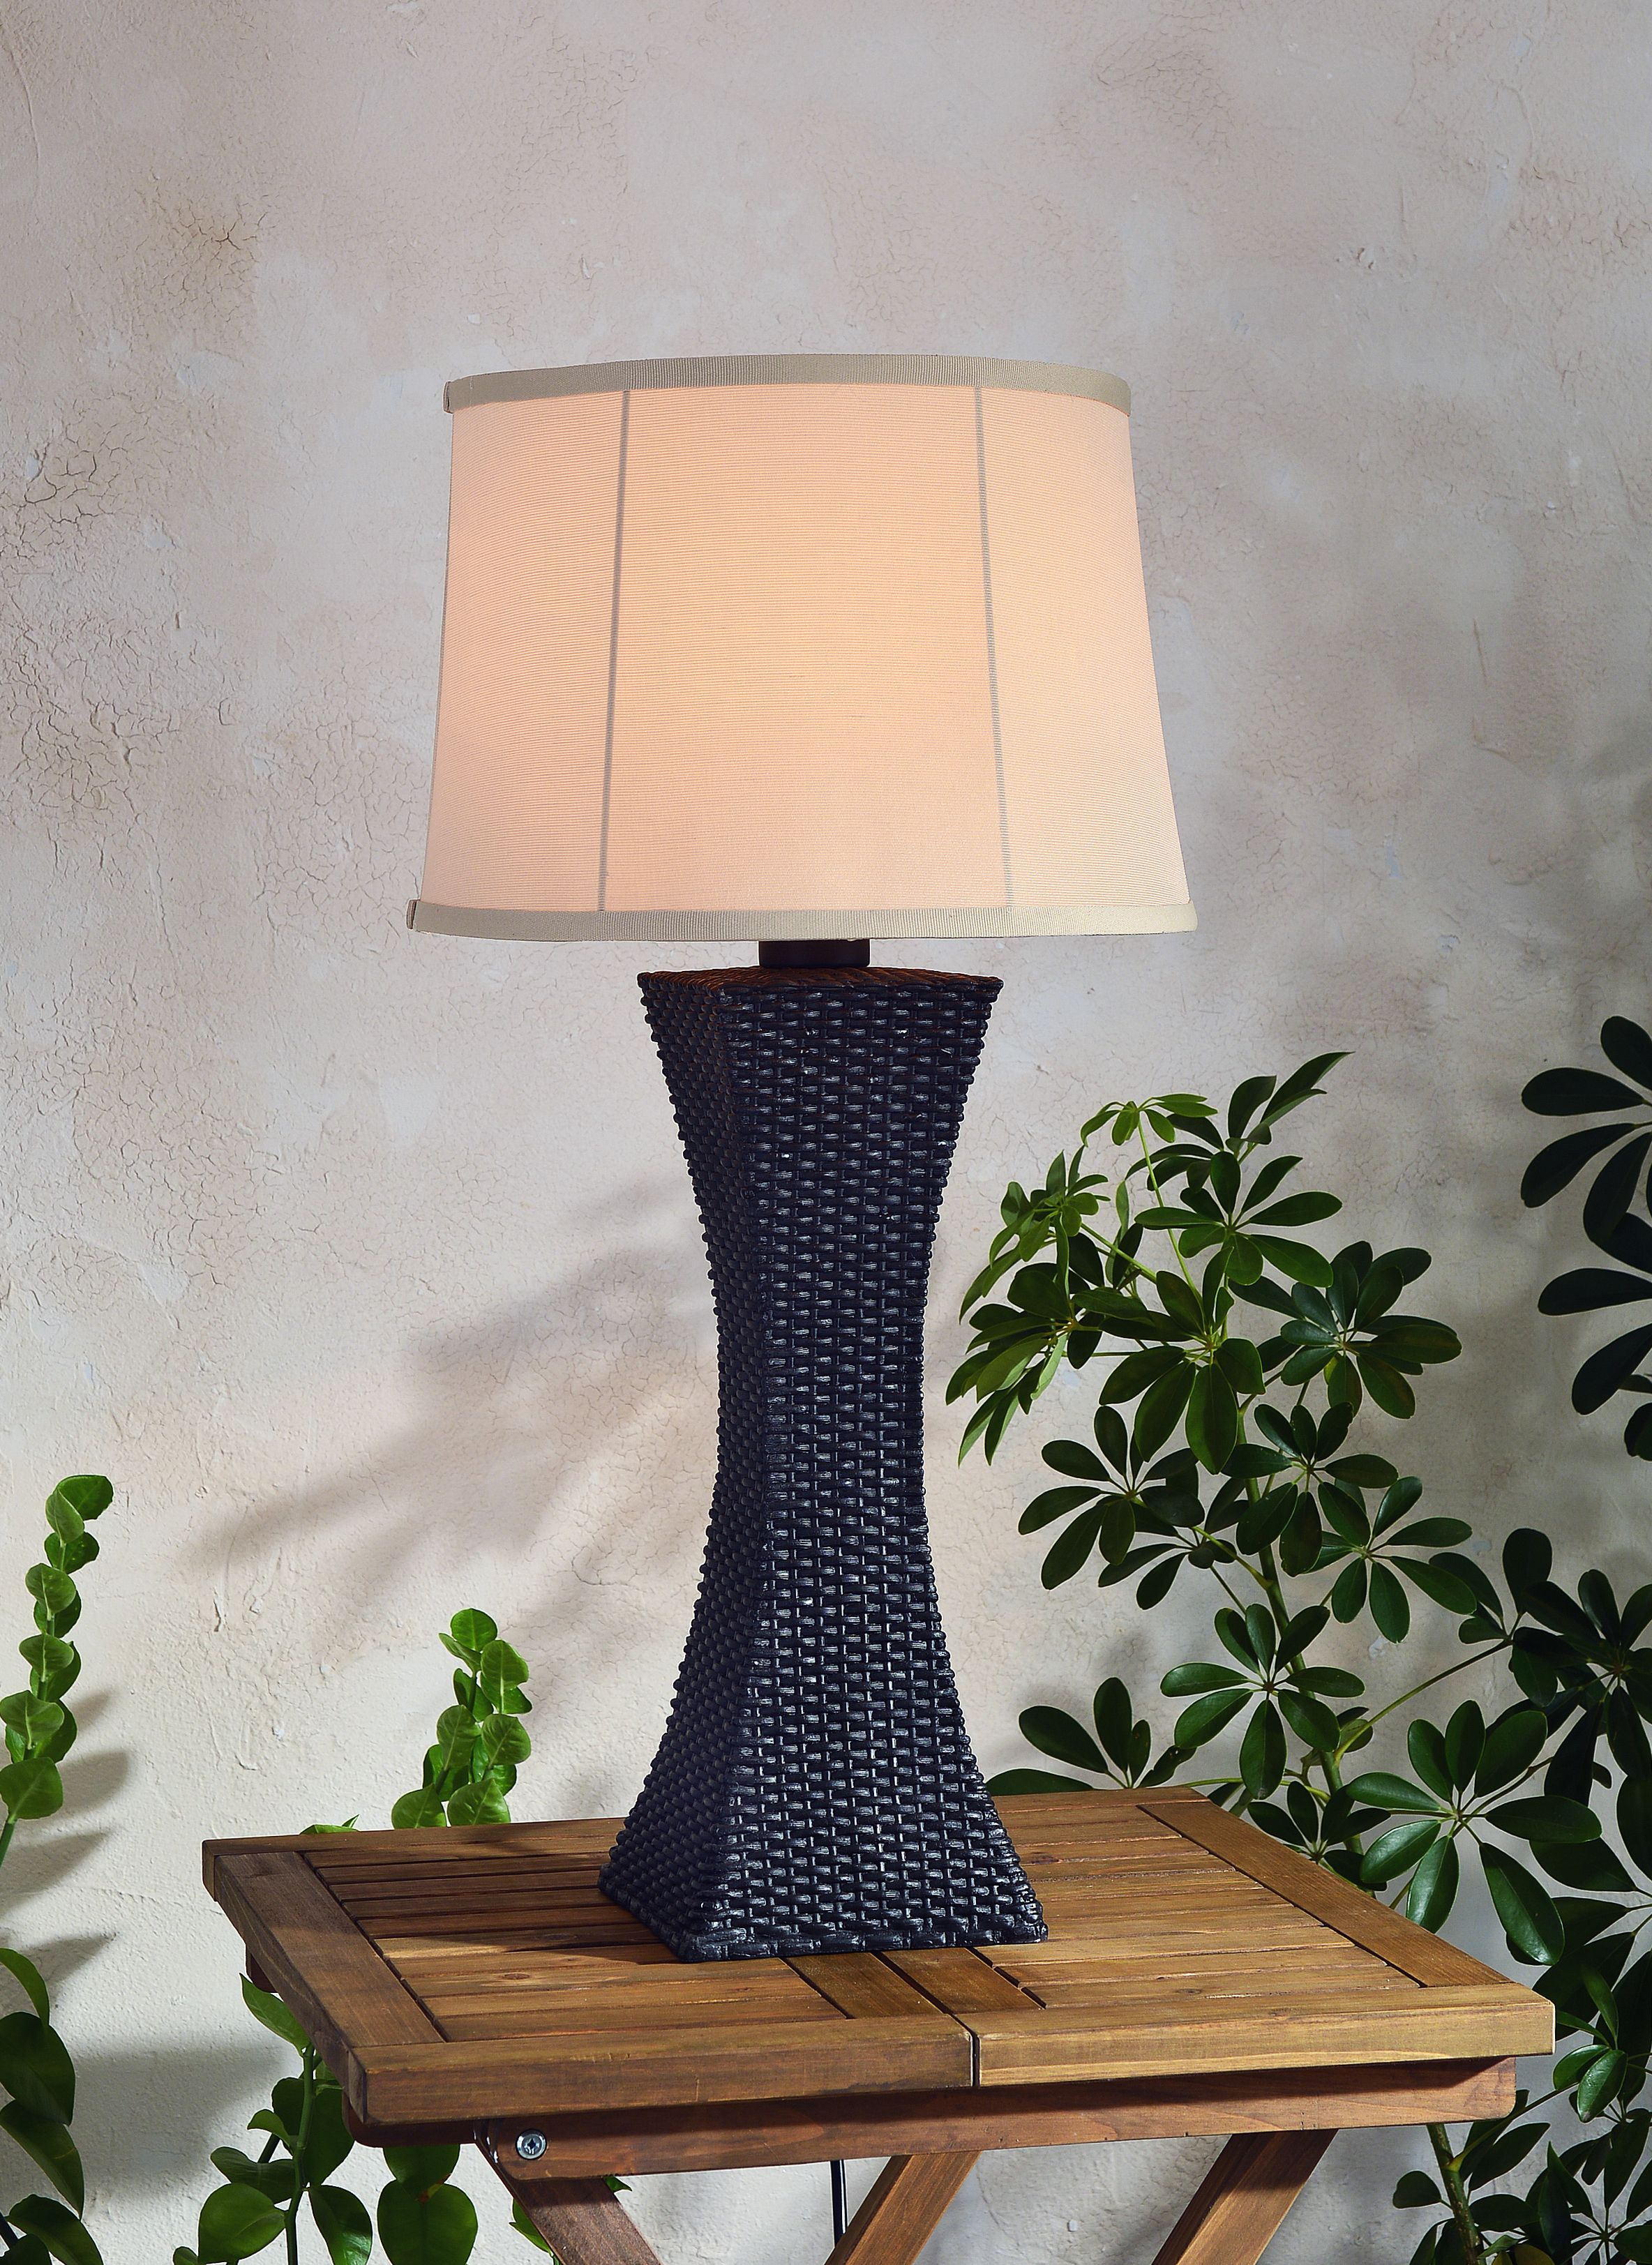 Kenroy Home Contemporary All-Weather Outdoor Tall Table Lamp, 30